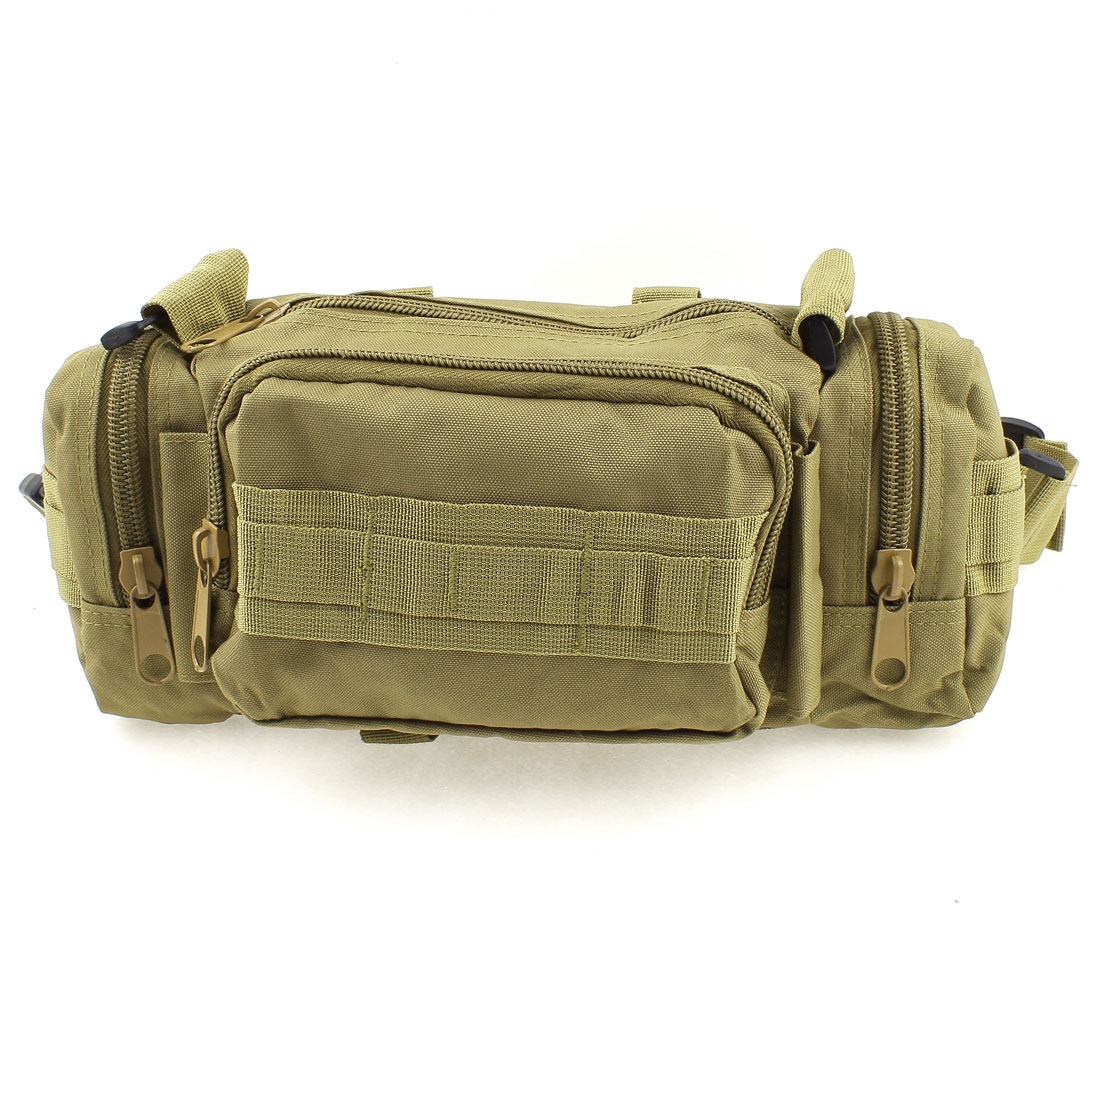 Khaki Zipper Interior Compartment Side Pockets Backpack Bag Case for Camera